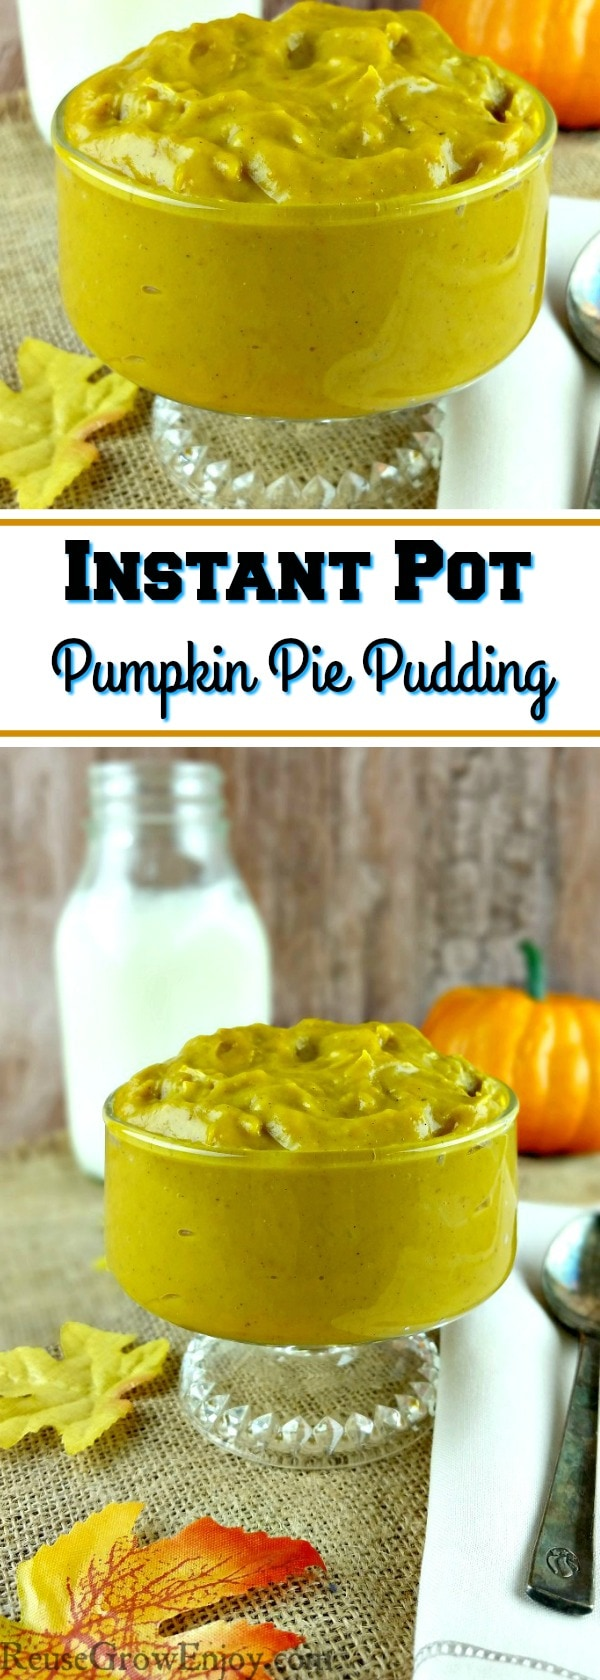 If you are crazy over pumpkin, I have a Instant Pot pudding for you to try. It is a recipe for homemade pumpkin pie pudding!